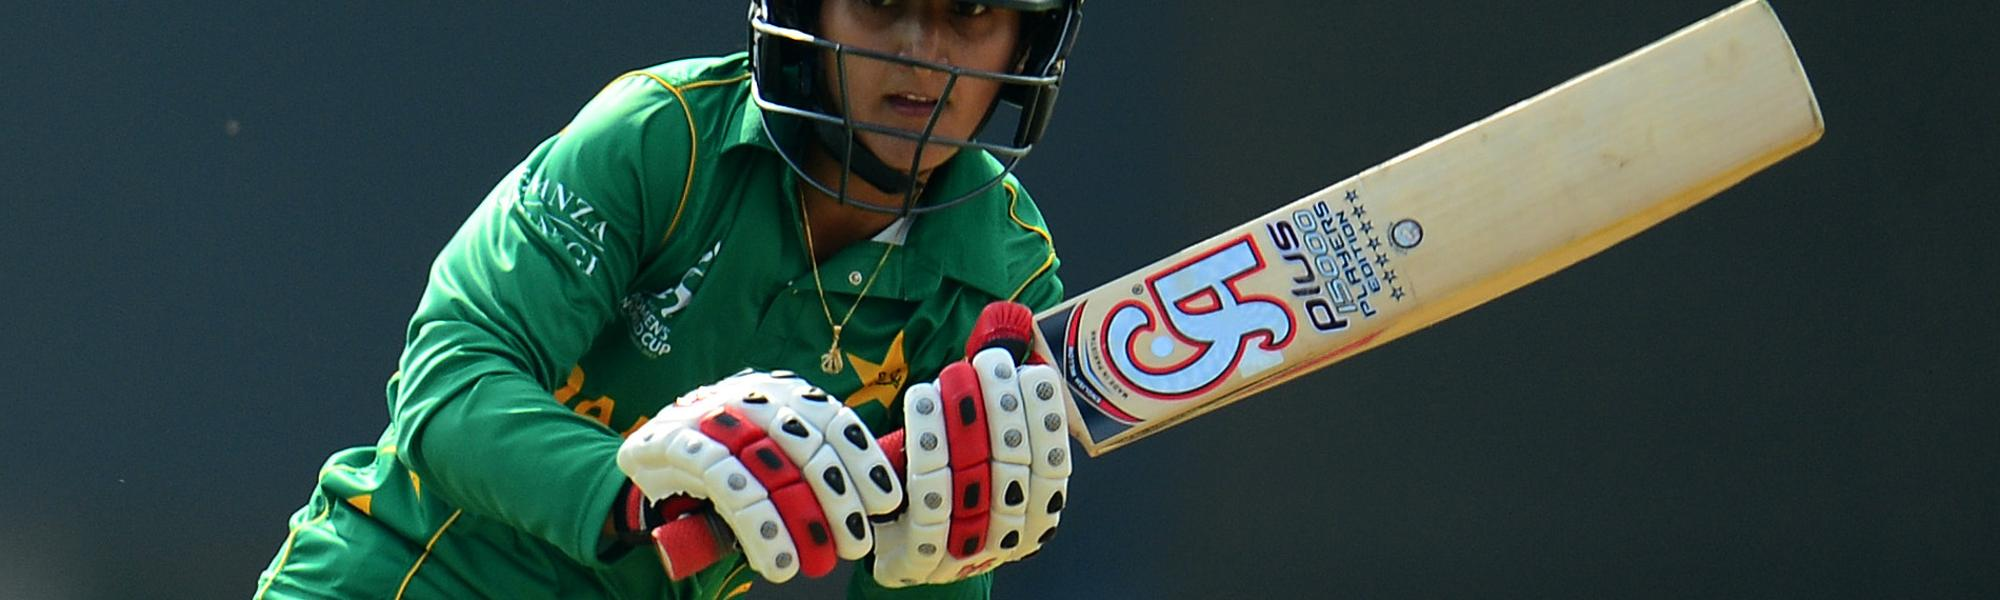 Bismah Maroof led the Pakistan batting with a 90-ball 89